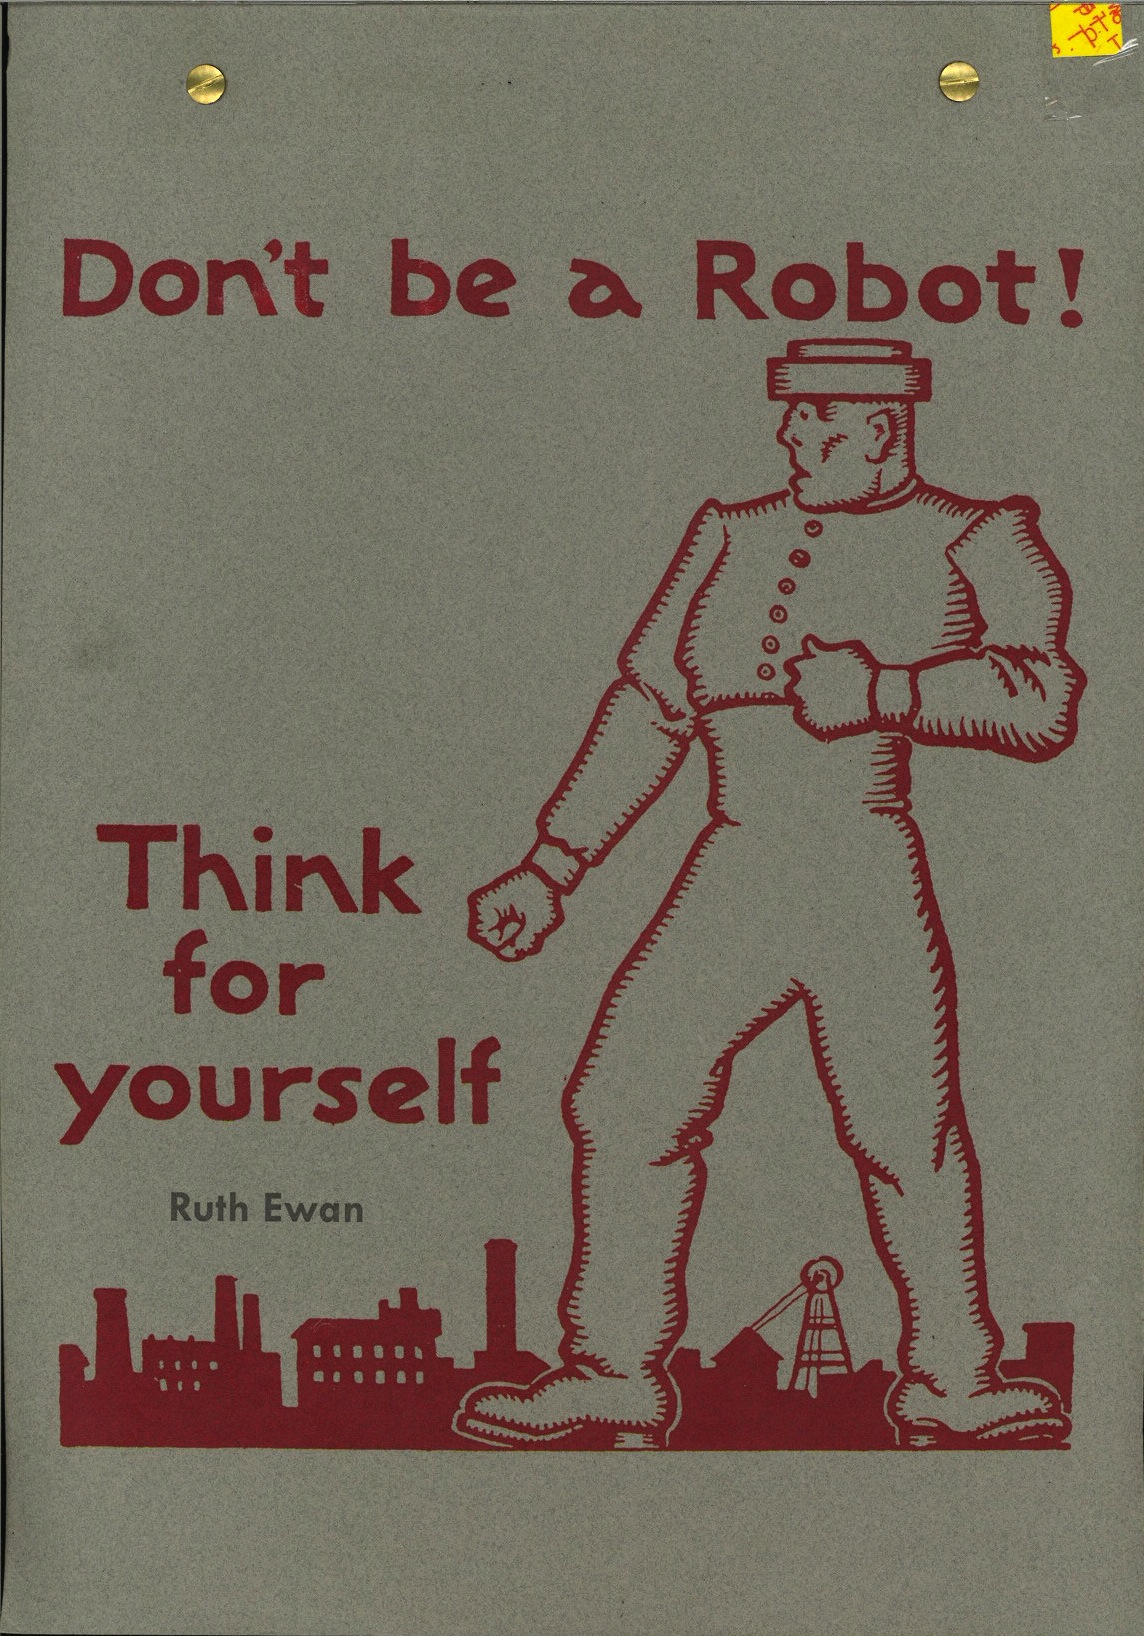 Don't be a Robot! Think for yourself